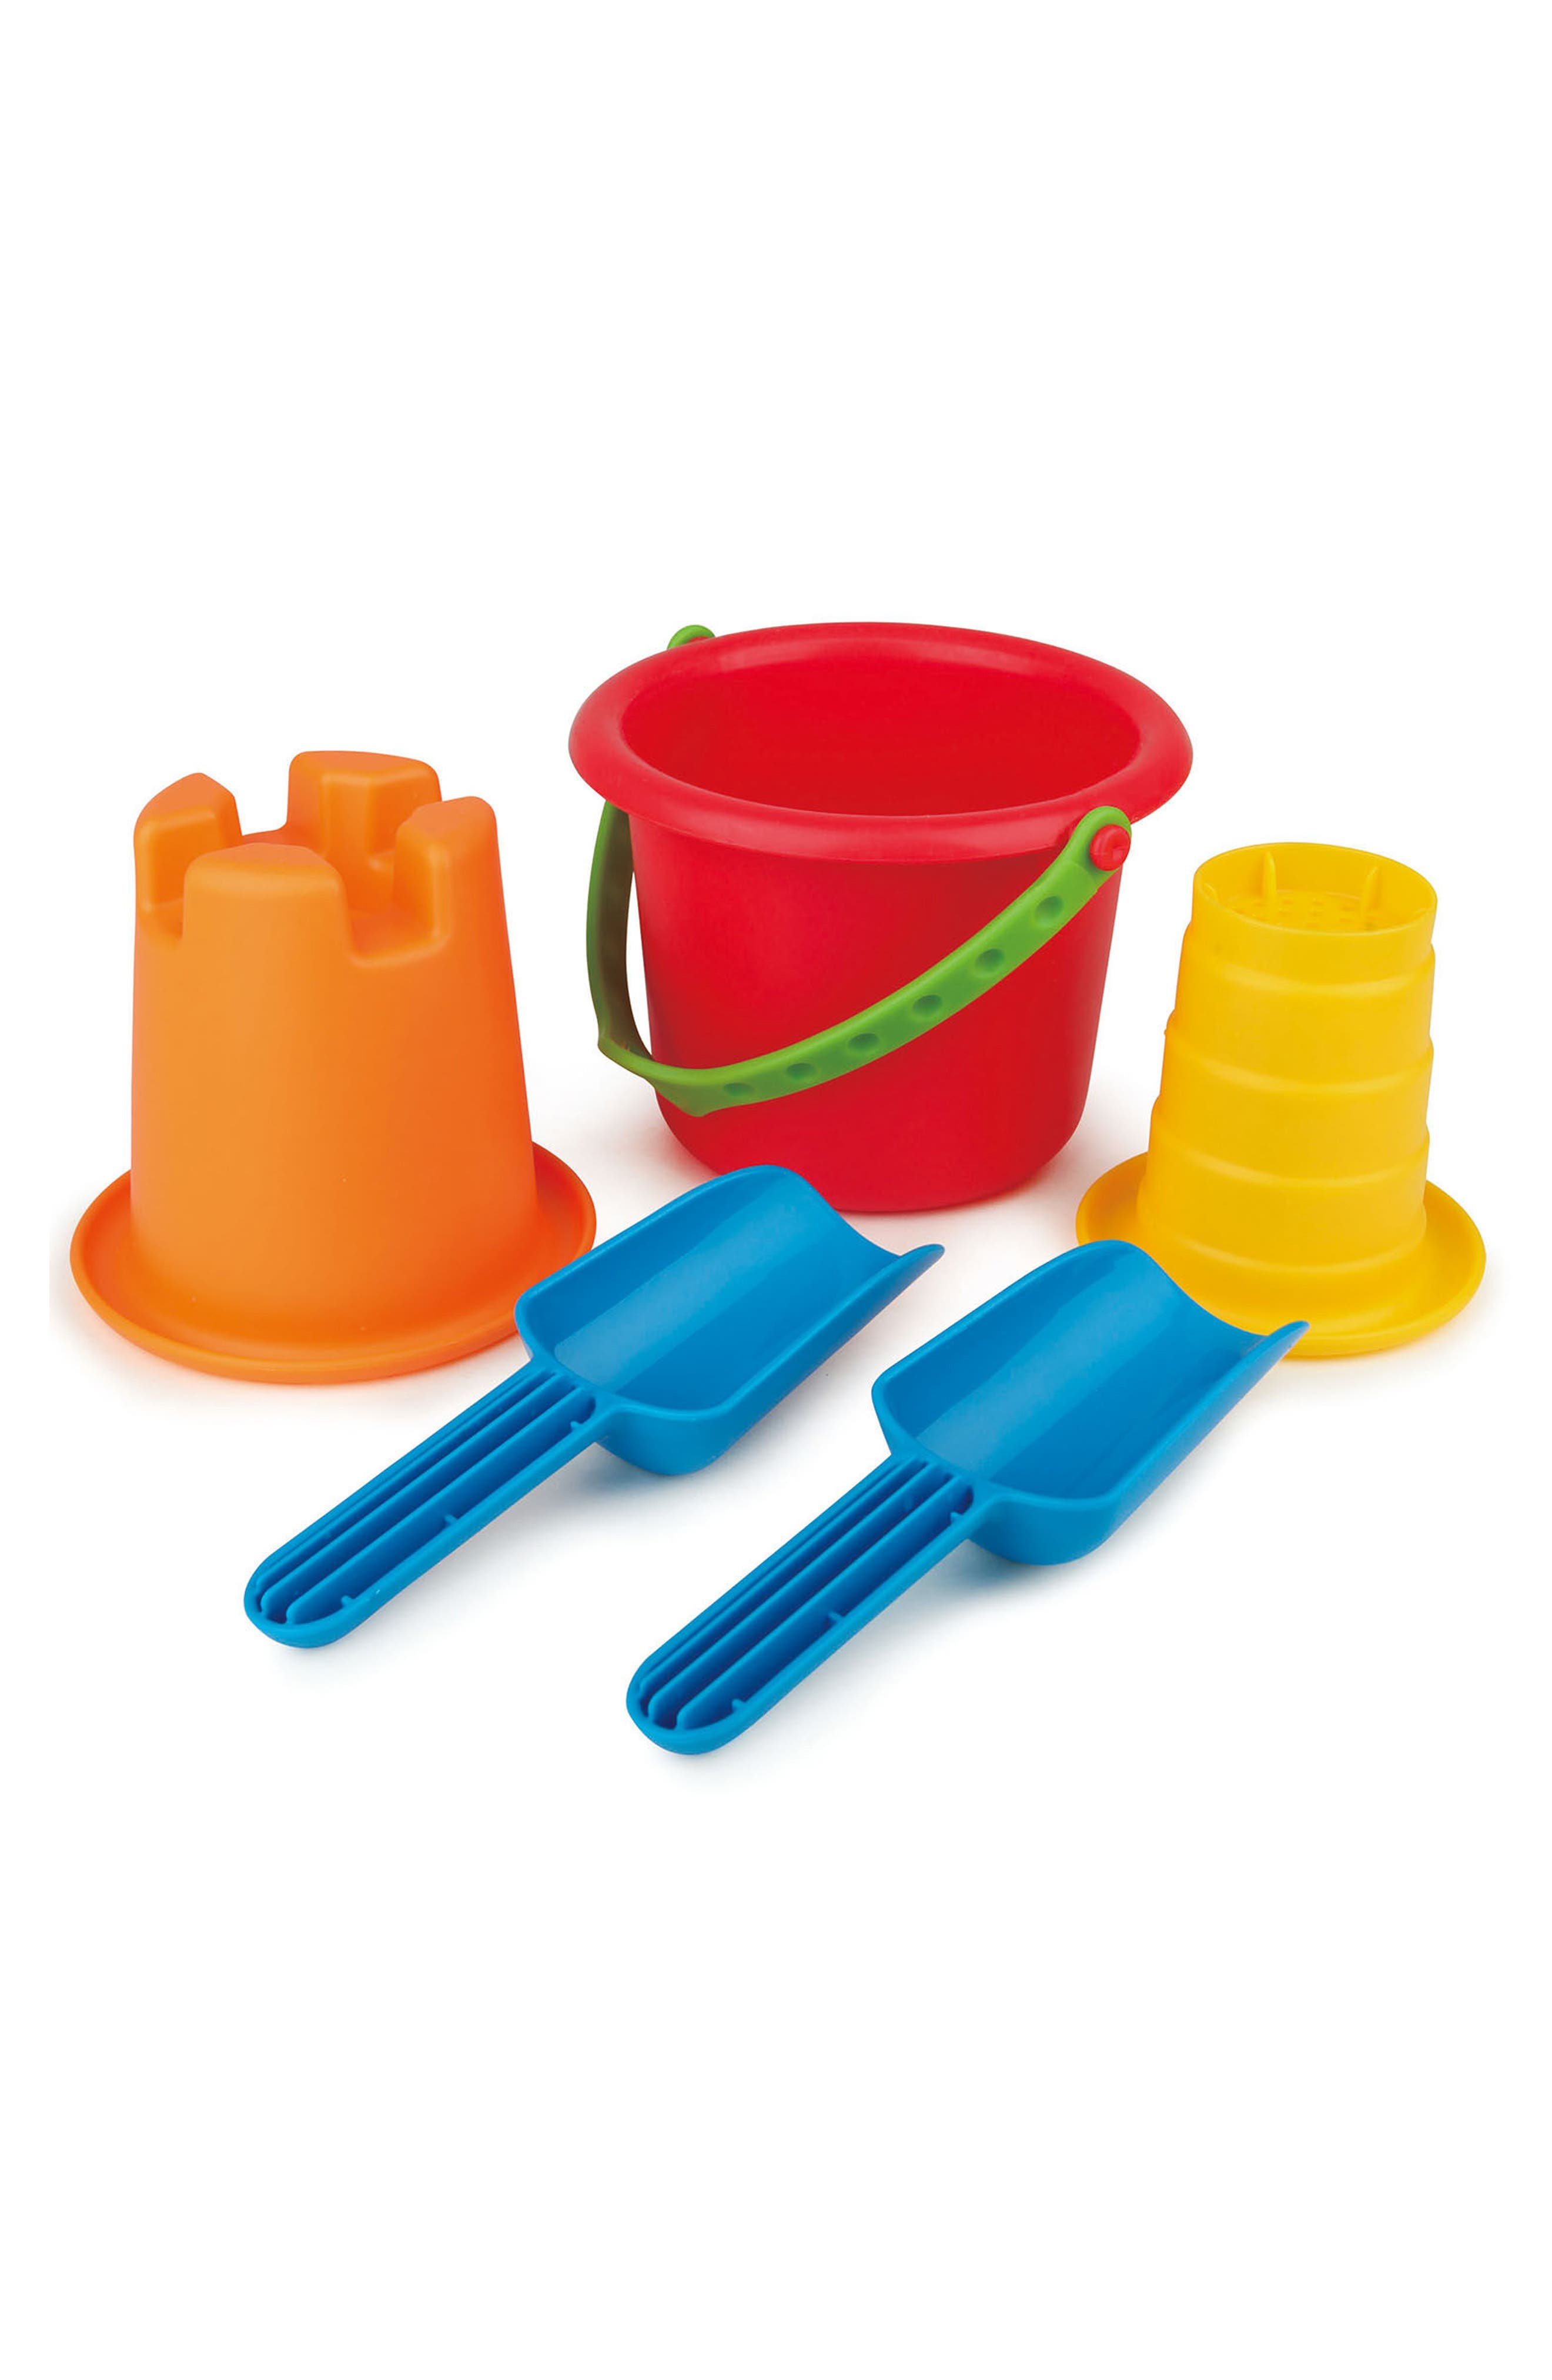 5-in-1 Beach Toy Kit,                         Main,                         color, 600